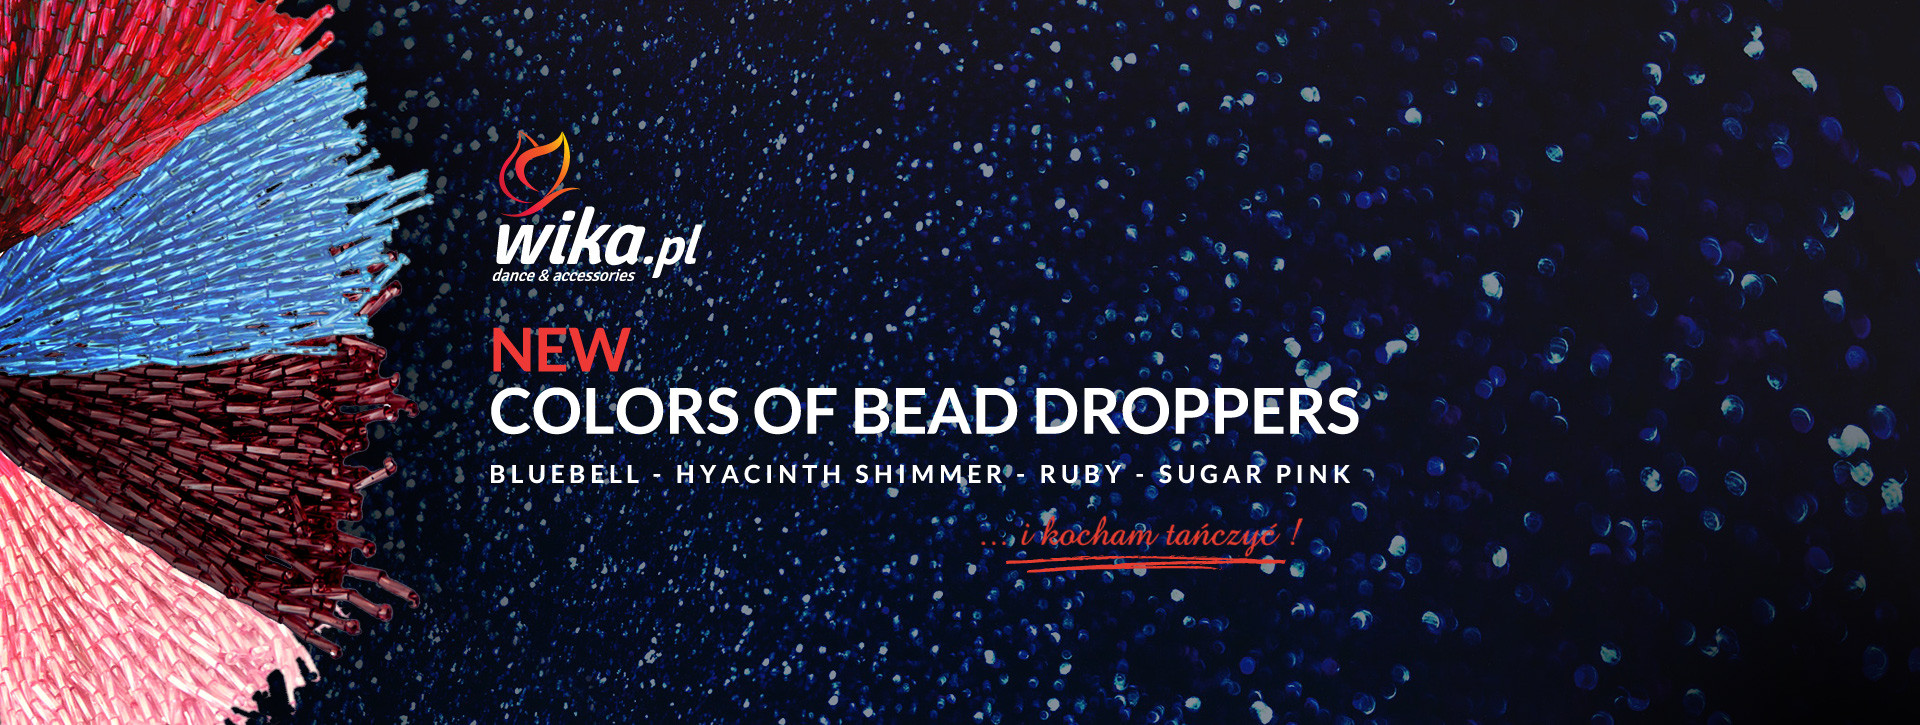 BEAD DROPPERS